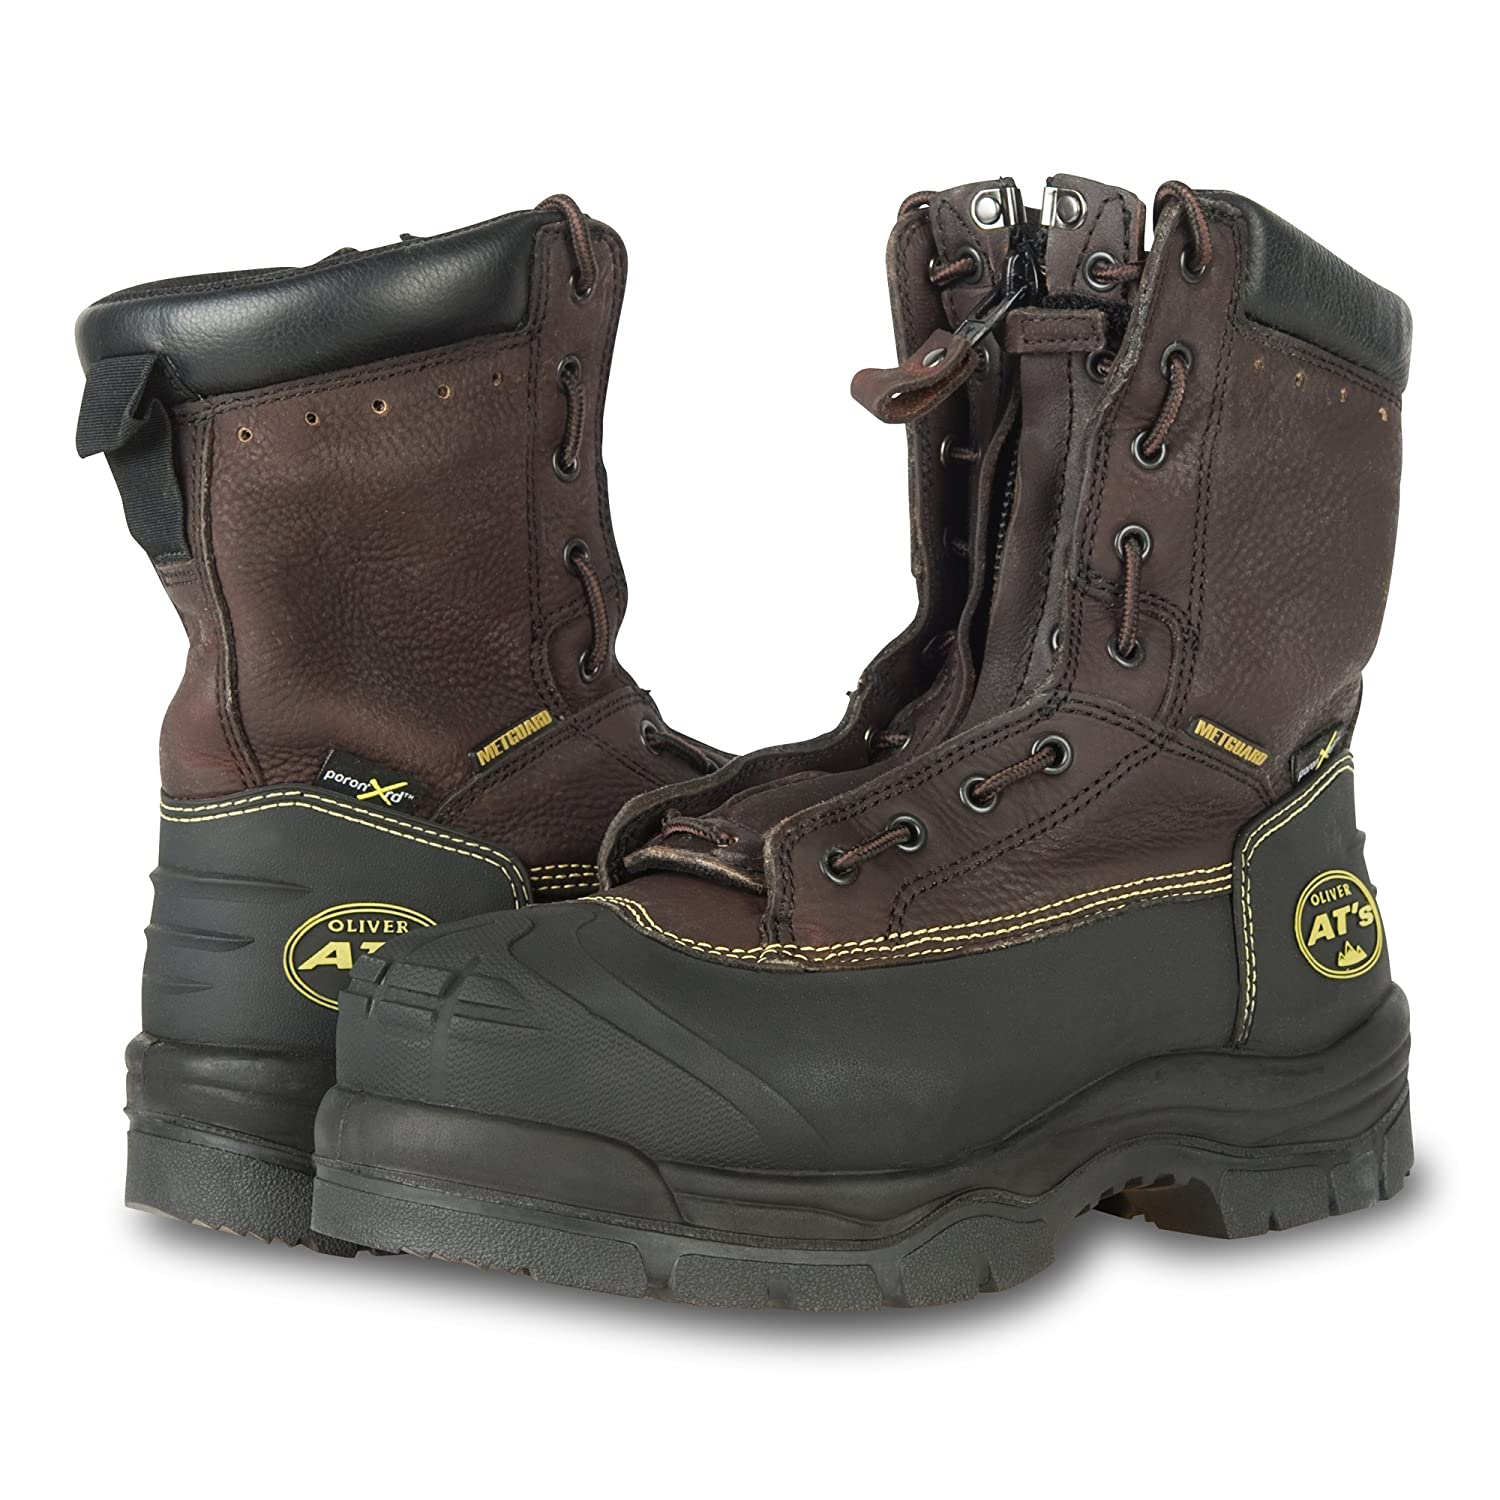 65392 Oliver 65 Series 8 Leather Chemical-Resistant Steel Toe Lace-In Zipper Mens Metatarsal Boots Brown